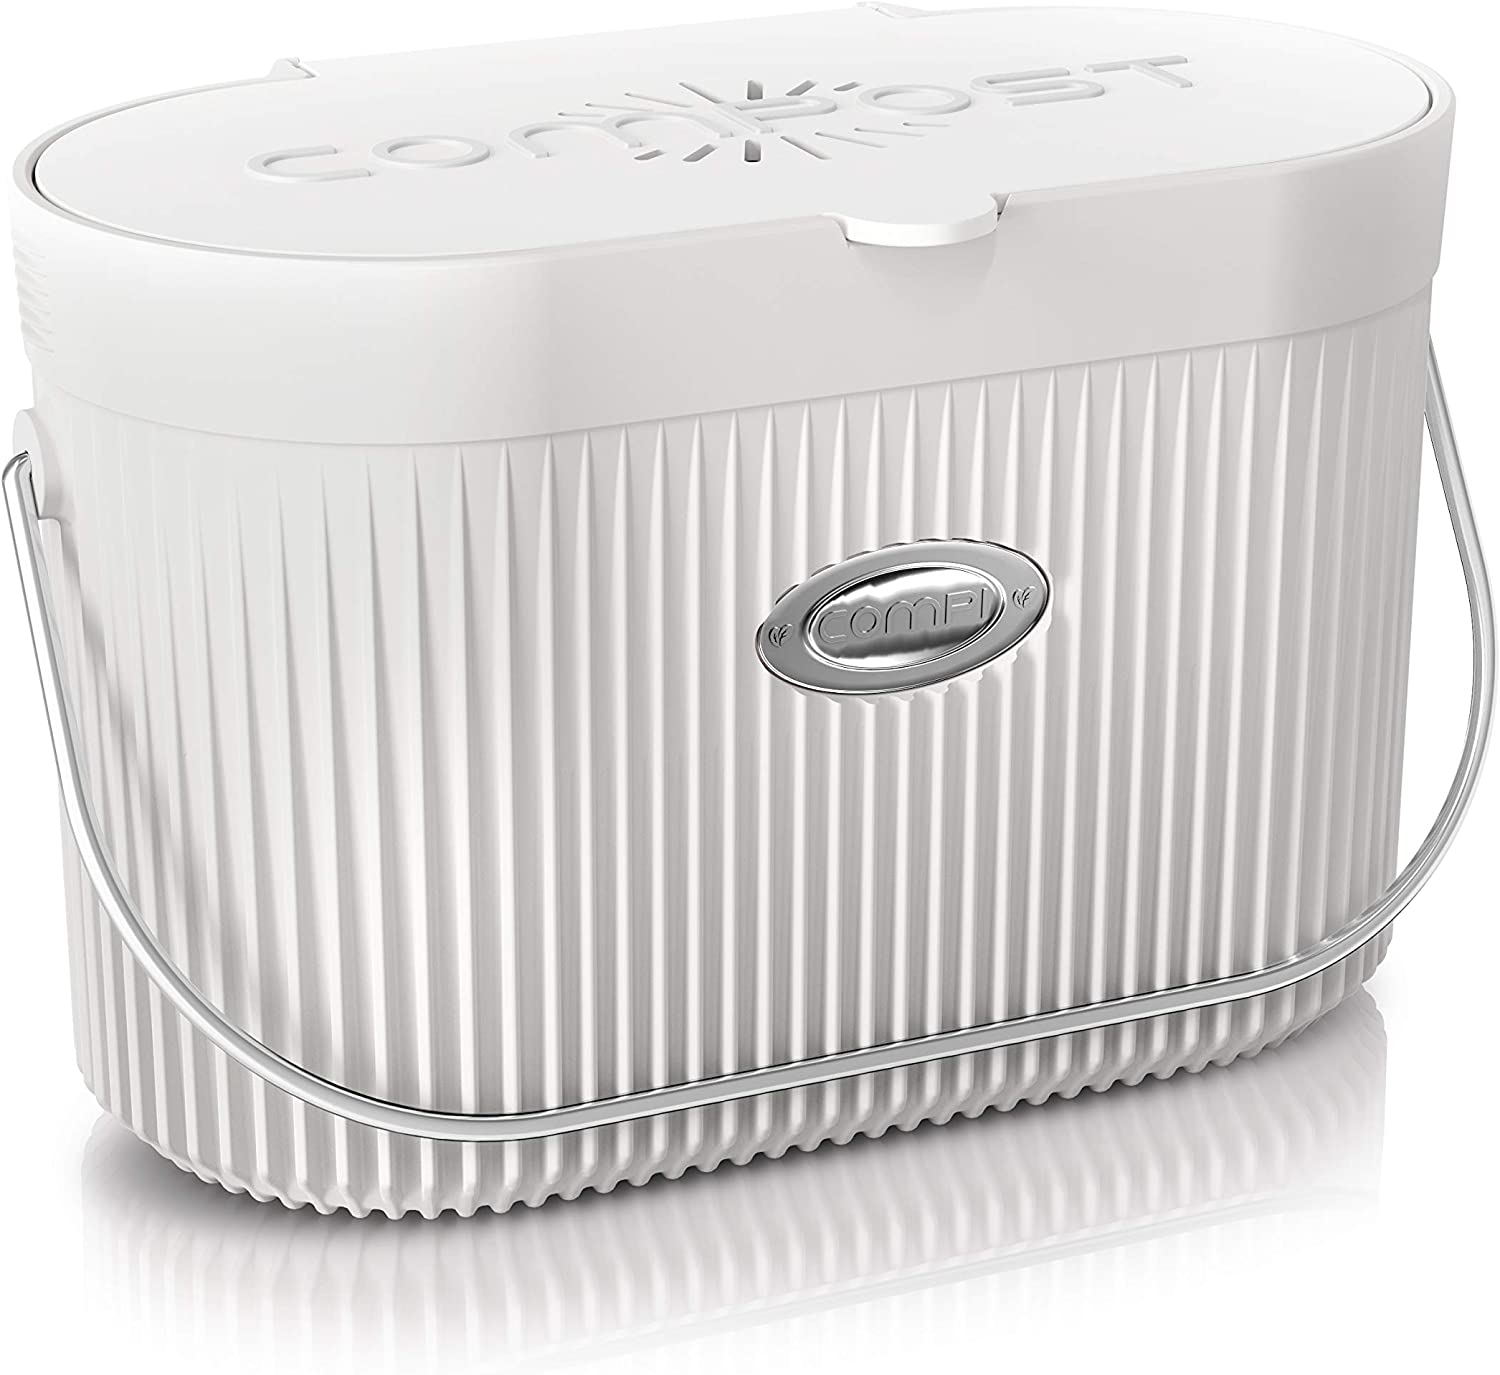 COMPi Bamboo Fiber Indoor Kitchen Compost Bin with Lid, 1.3 Gal, White - Sealed Countertop Container, Dishwasher Safe, Odor-Free with Carbon Filters